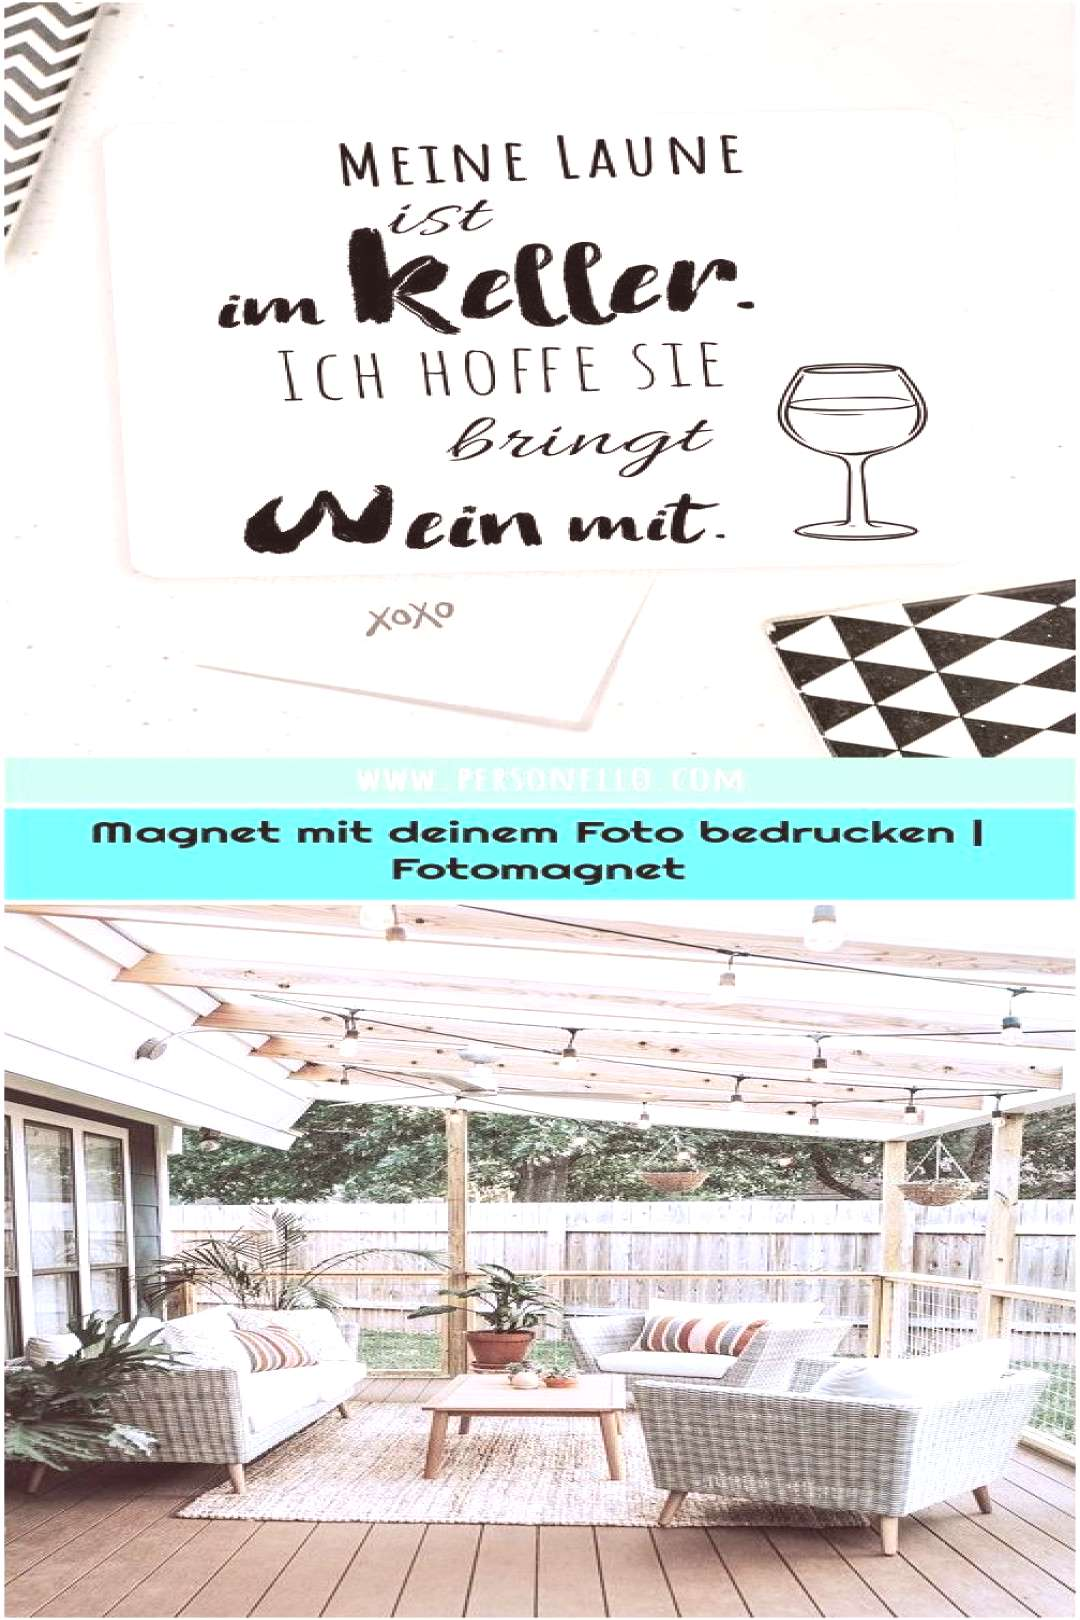 Magnet mit deinem Foto bedrucken | Fotomagnet 1. The Most Affordable Outdoor Patio Rugs | Posh Penn